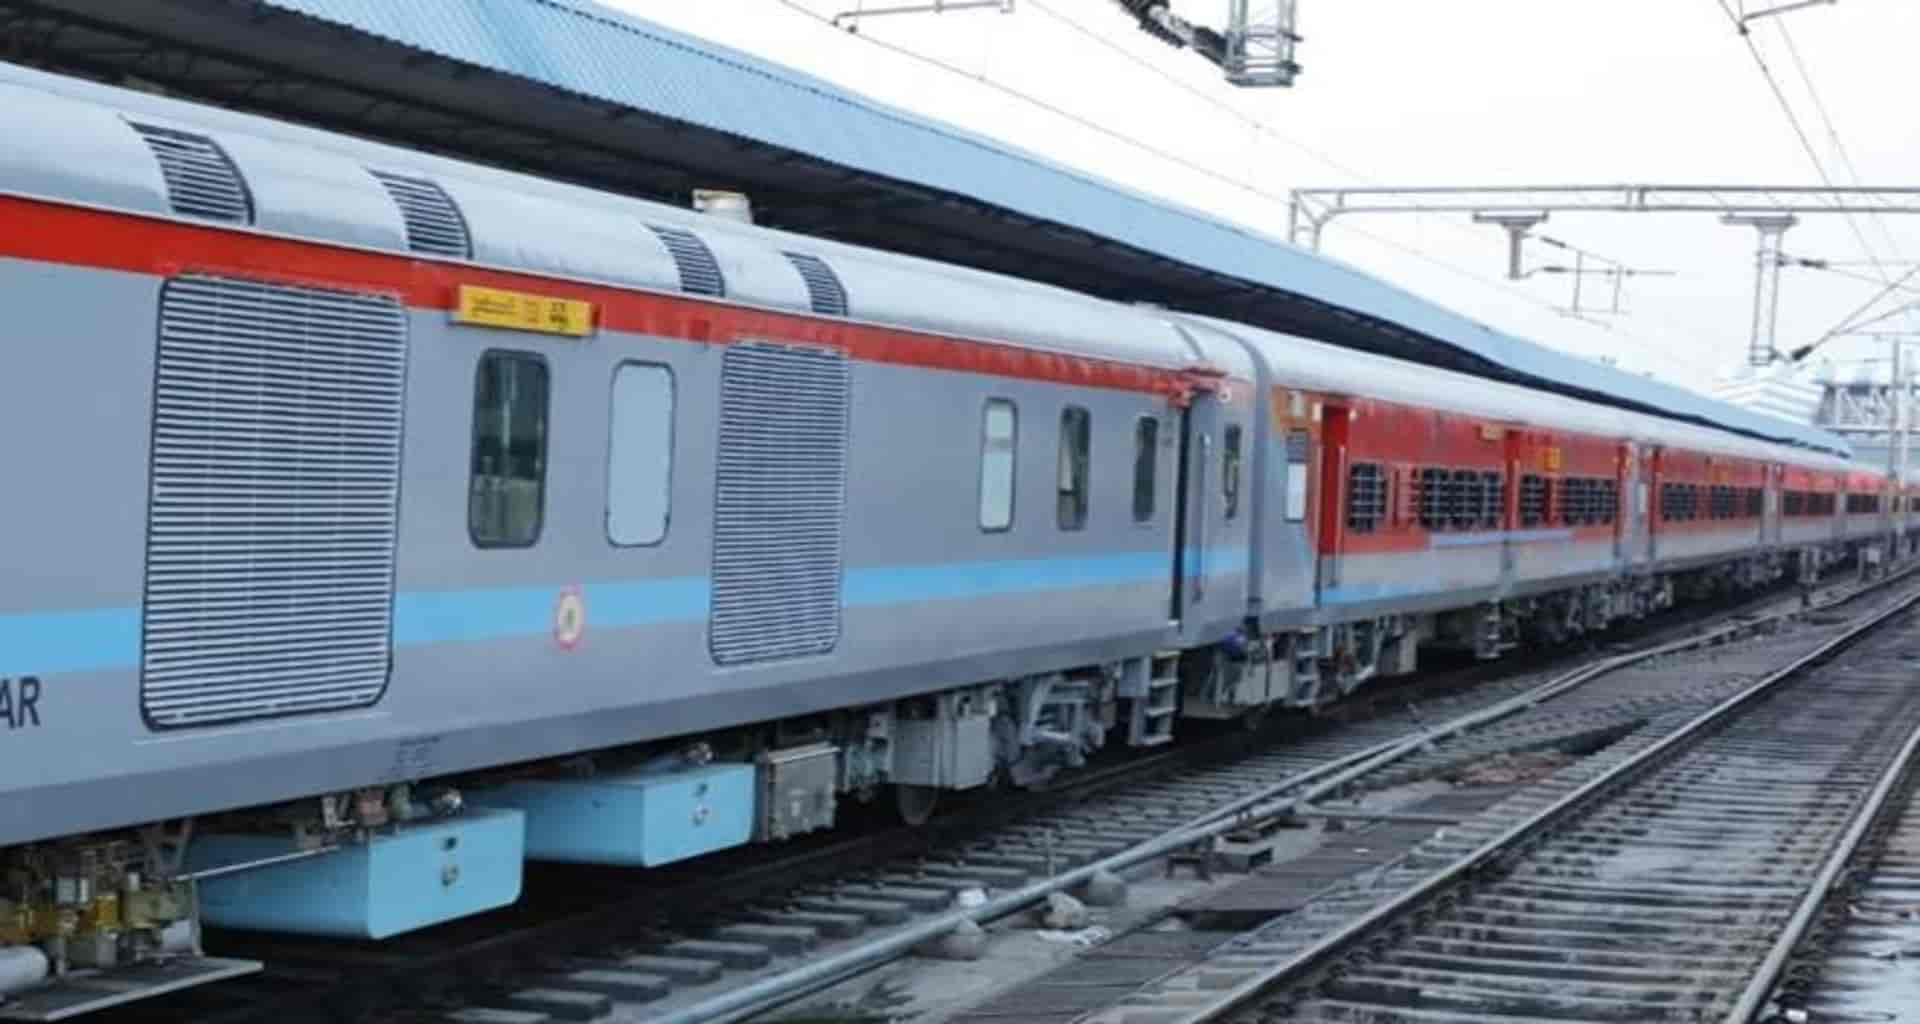 Railways to start advance reservation period of special trains from August 1st